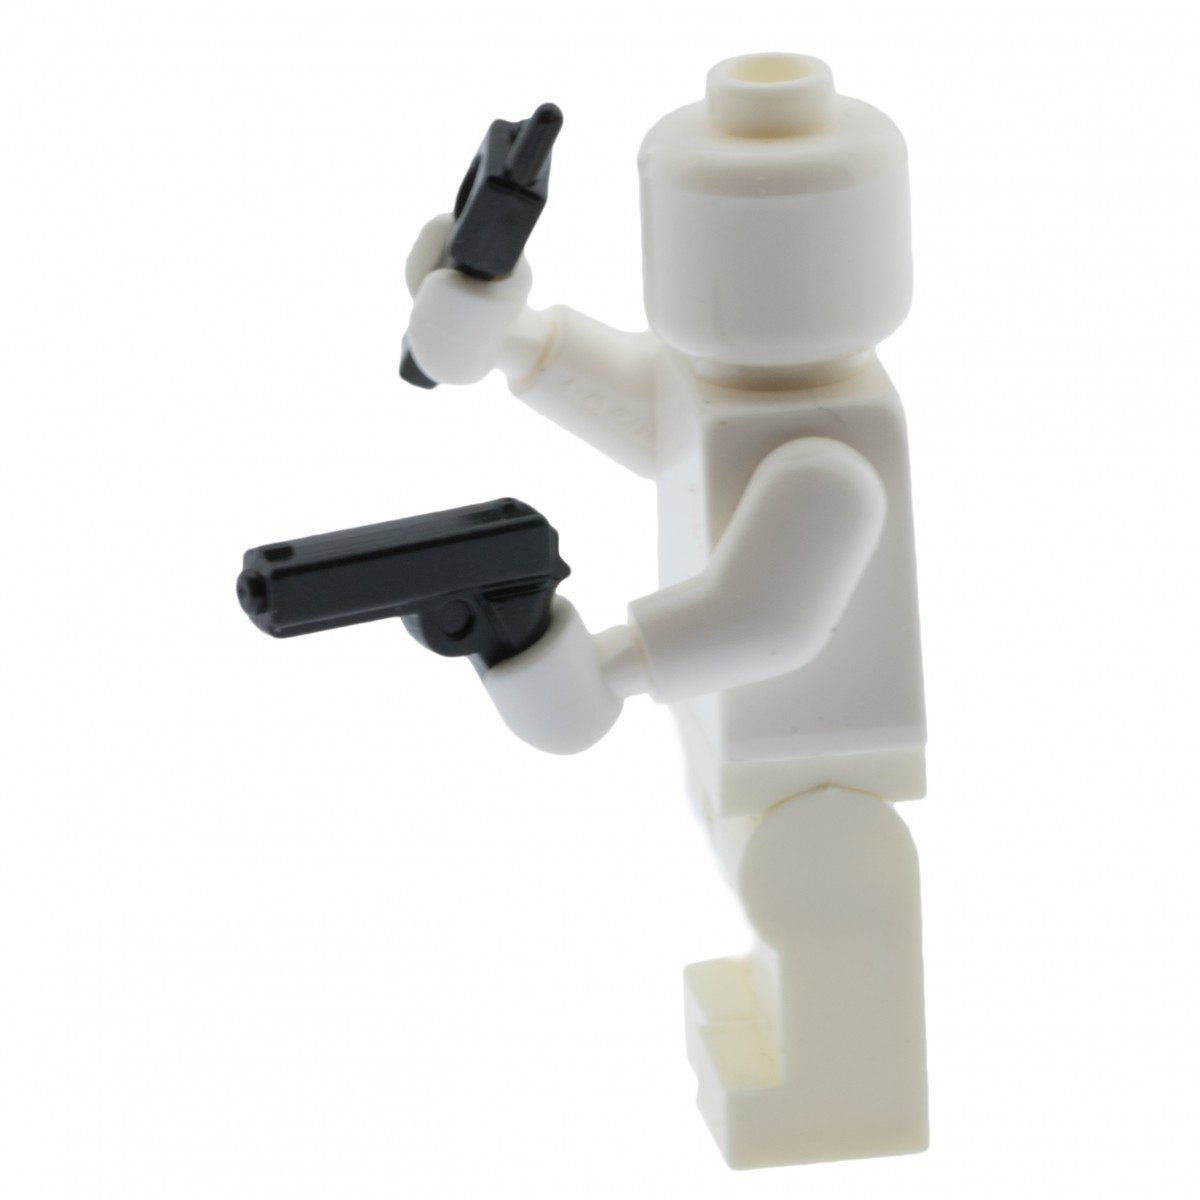 Custom Minifigures Military Army Guns Weapons Compatible w/ Lego Sets Minifigs